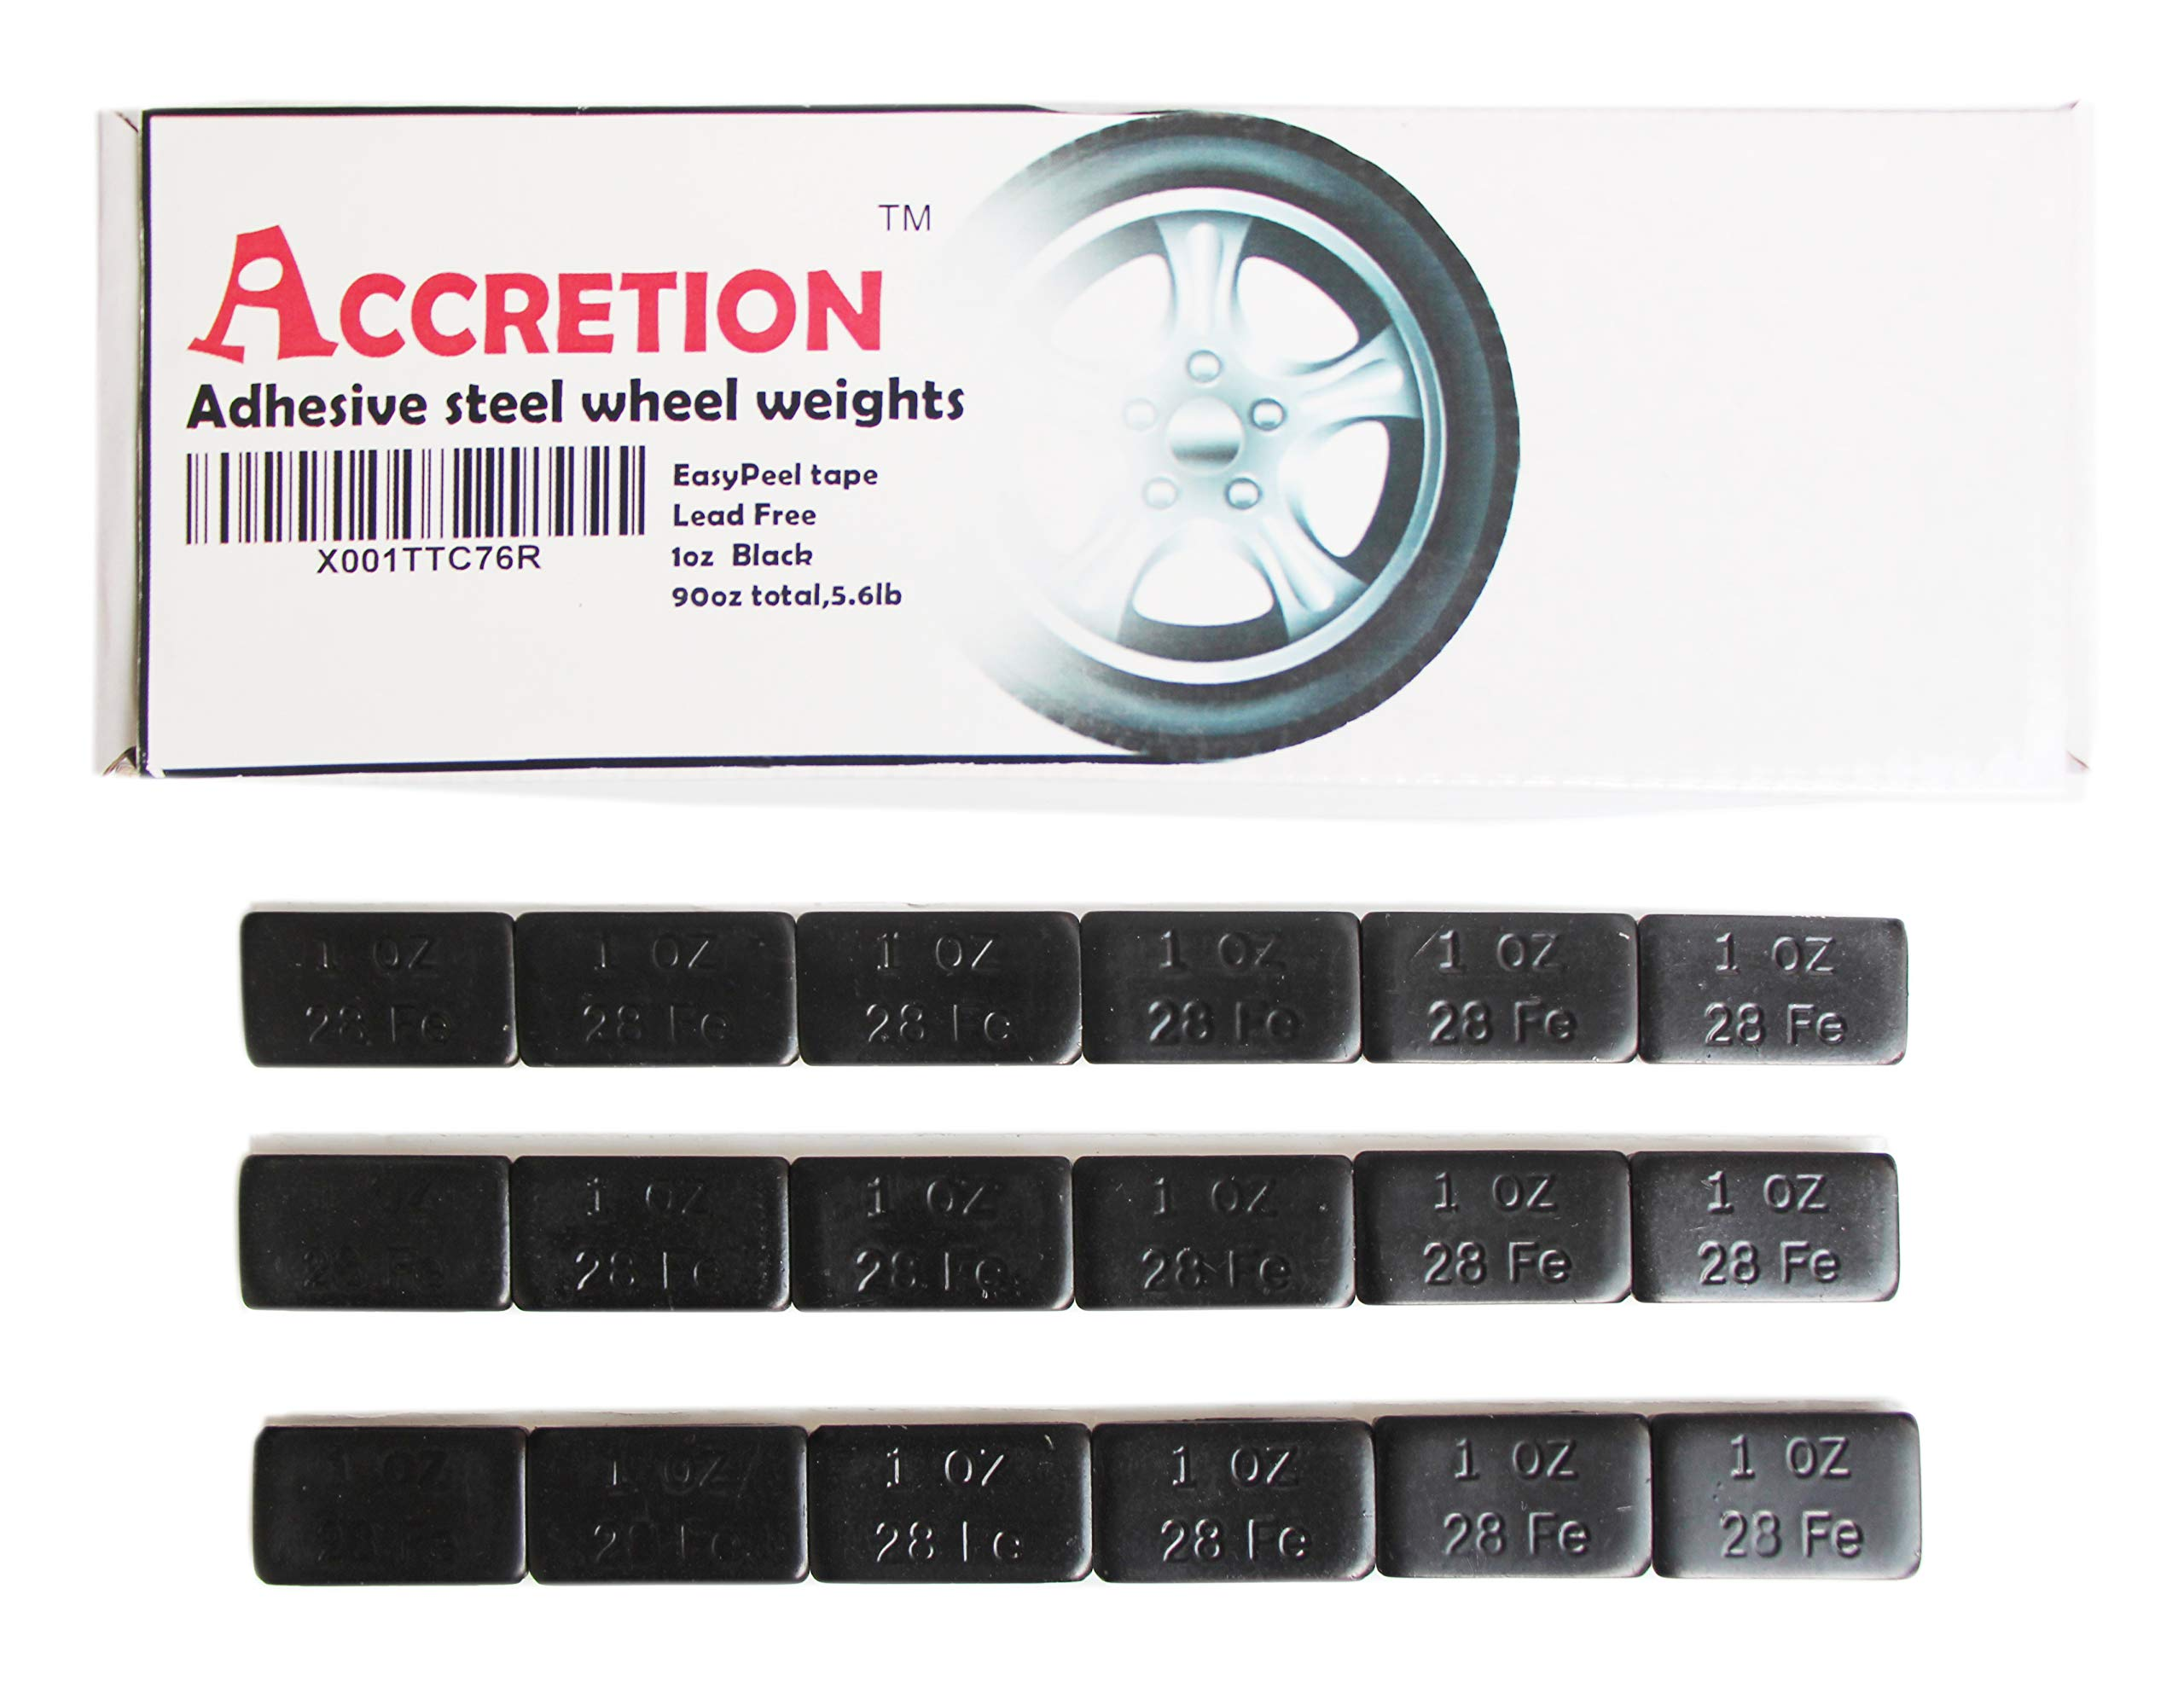 Accretion 1 oz, Black Wheel Weights (Lead Free), USA Made White Tape Backing. Corrosion Resistance, Low Profile. 90 Oz Total,5.6 Lbs(90 Pcs) by Accretion